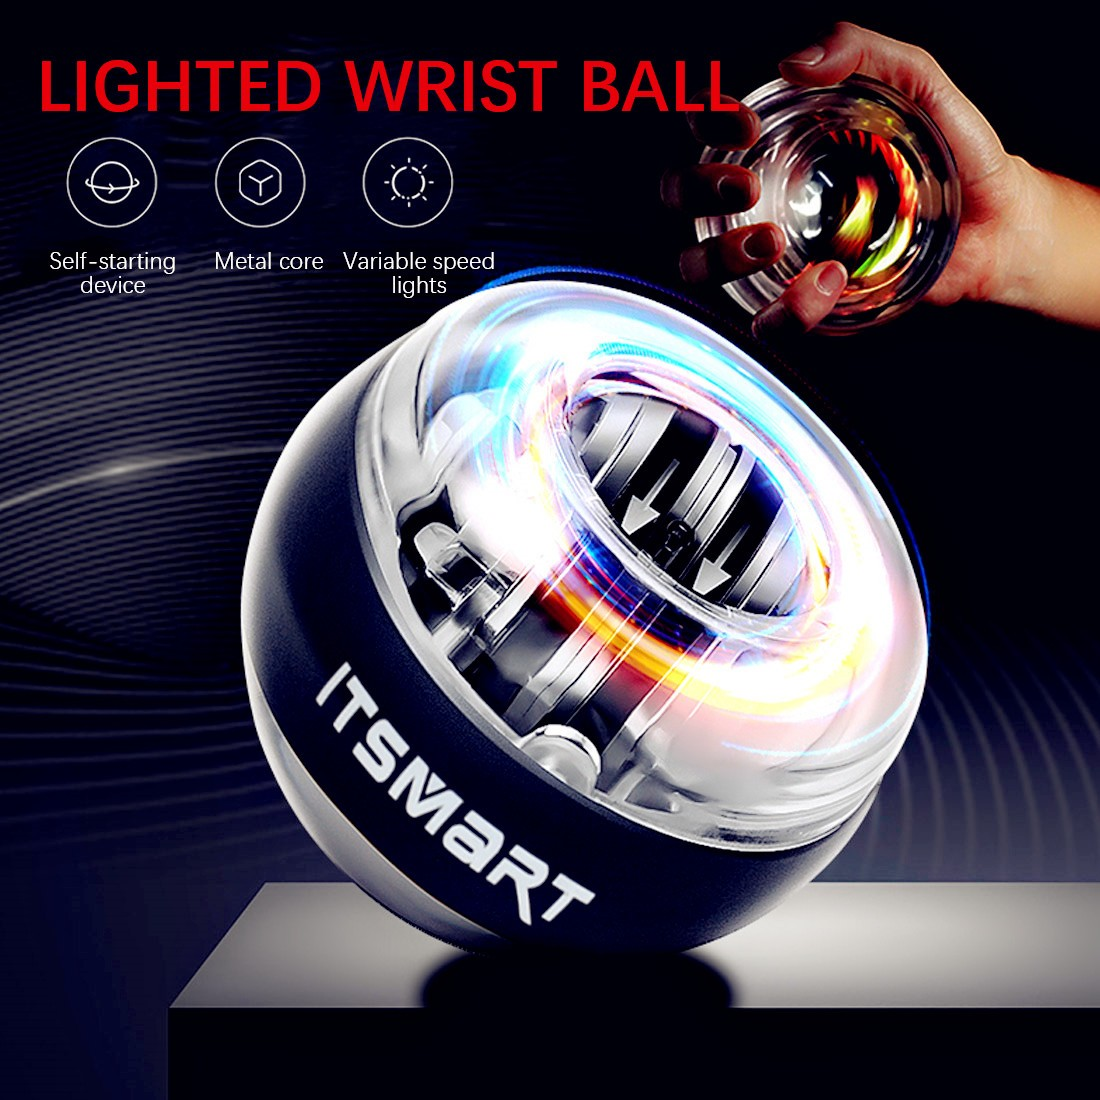 Resbo New Gyroscope Workout Wrist Arm Green Hand Muscle Force Power  Exercise Strengthen Ball Trainer Fitness Equipment - buy at the price of  $4.77 in aliexpress.com   imall.com